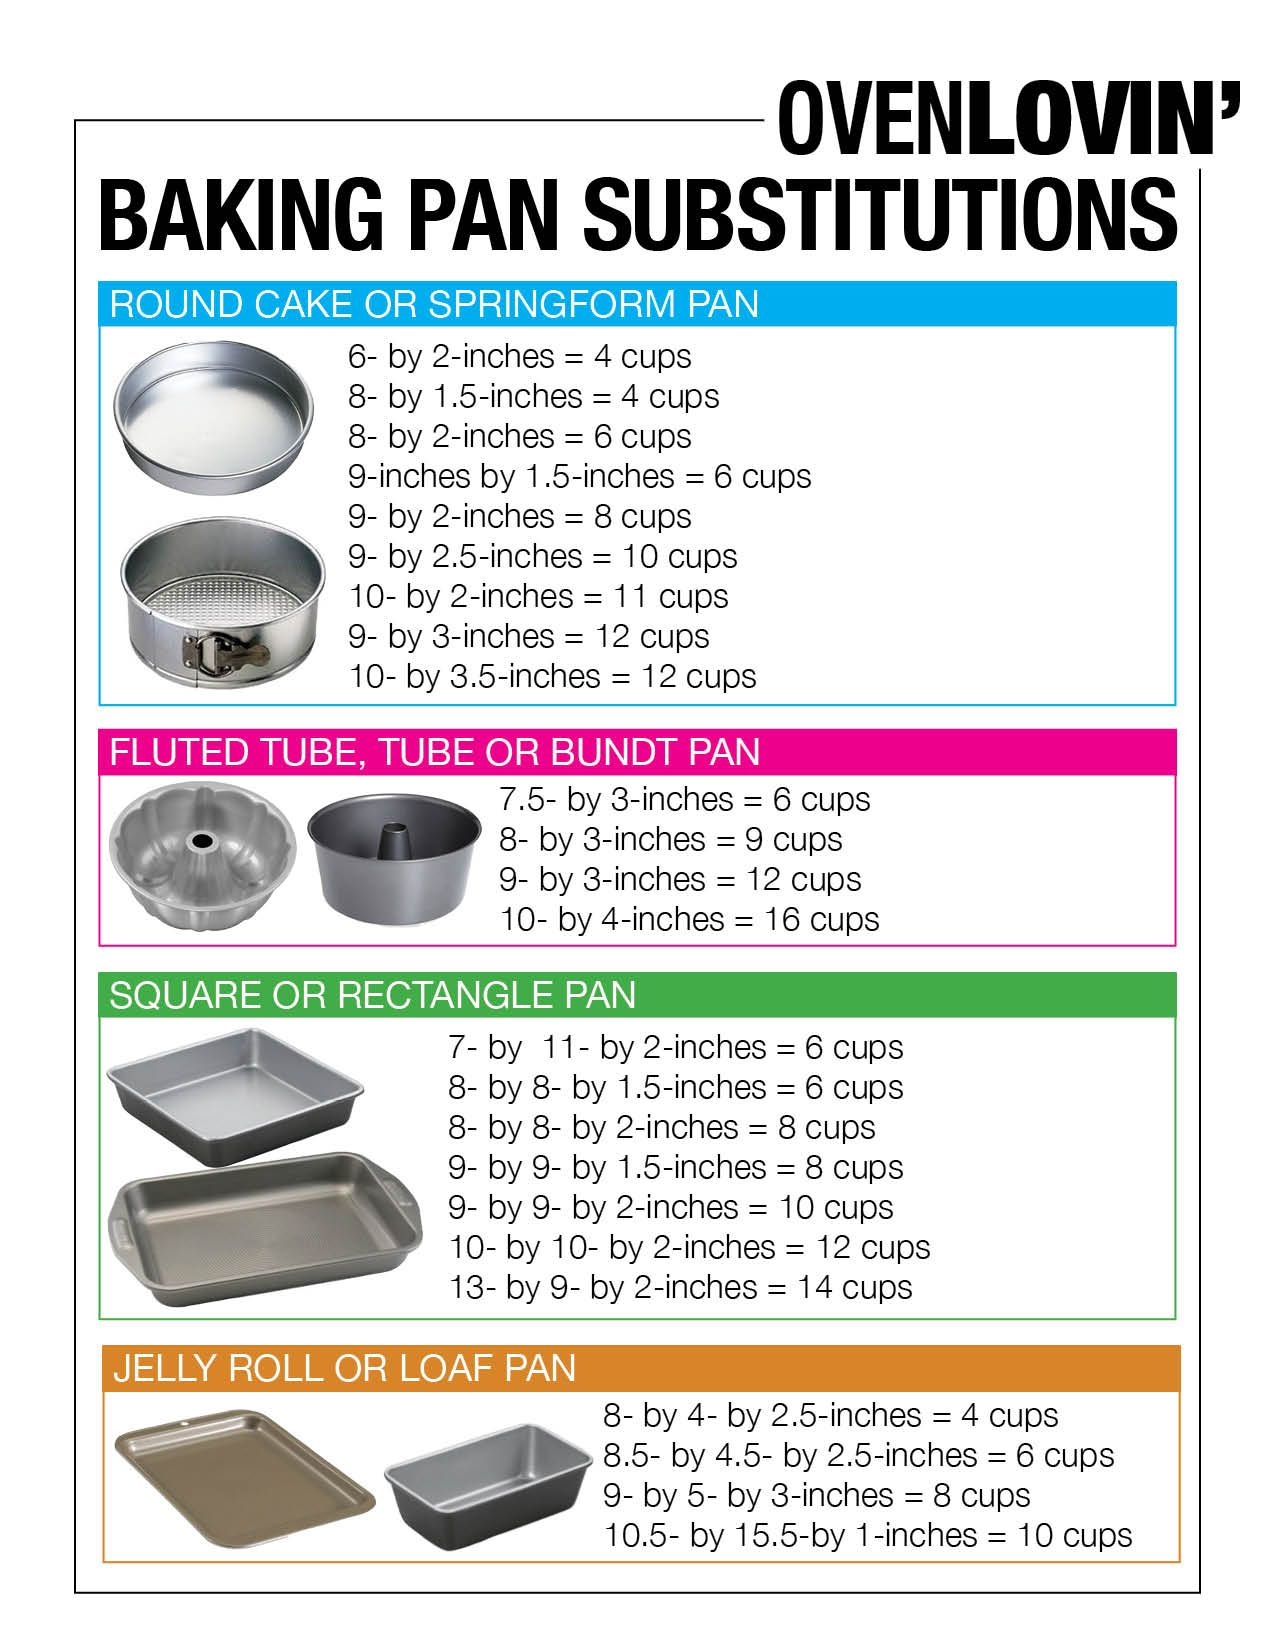 Baking pan conversion chart oven lovin fabulous food baking pan conversion chart oven lovin nvjuhfo Images